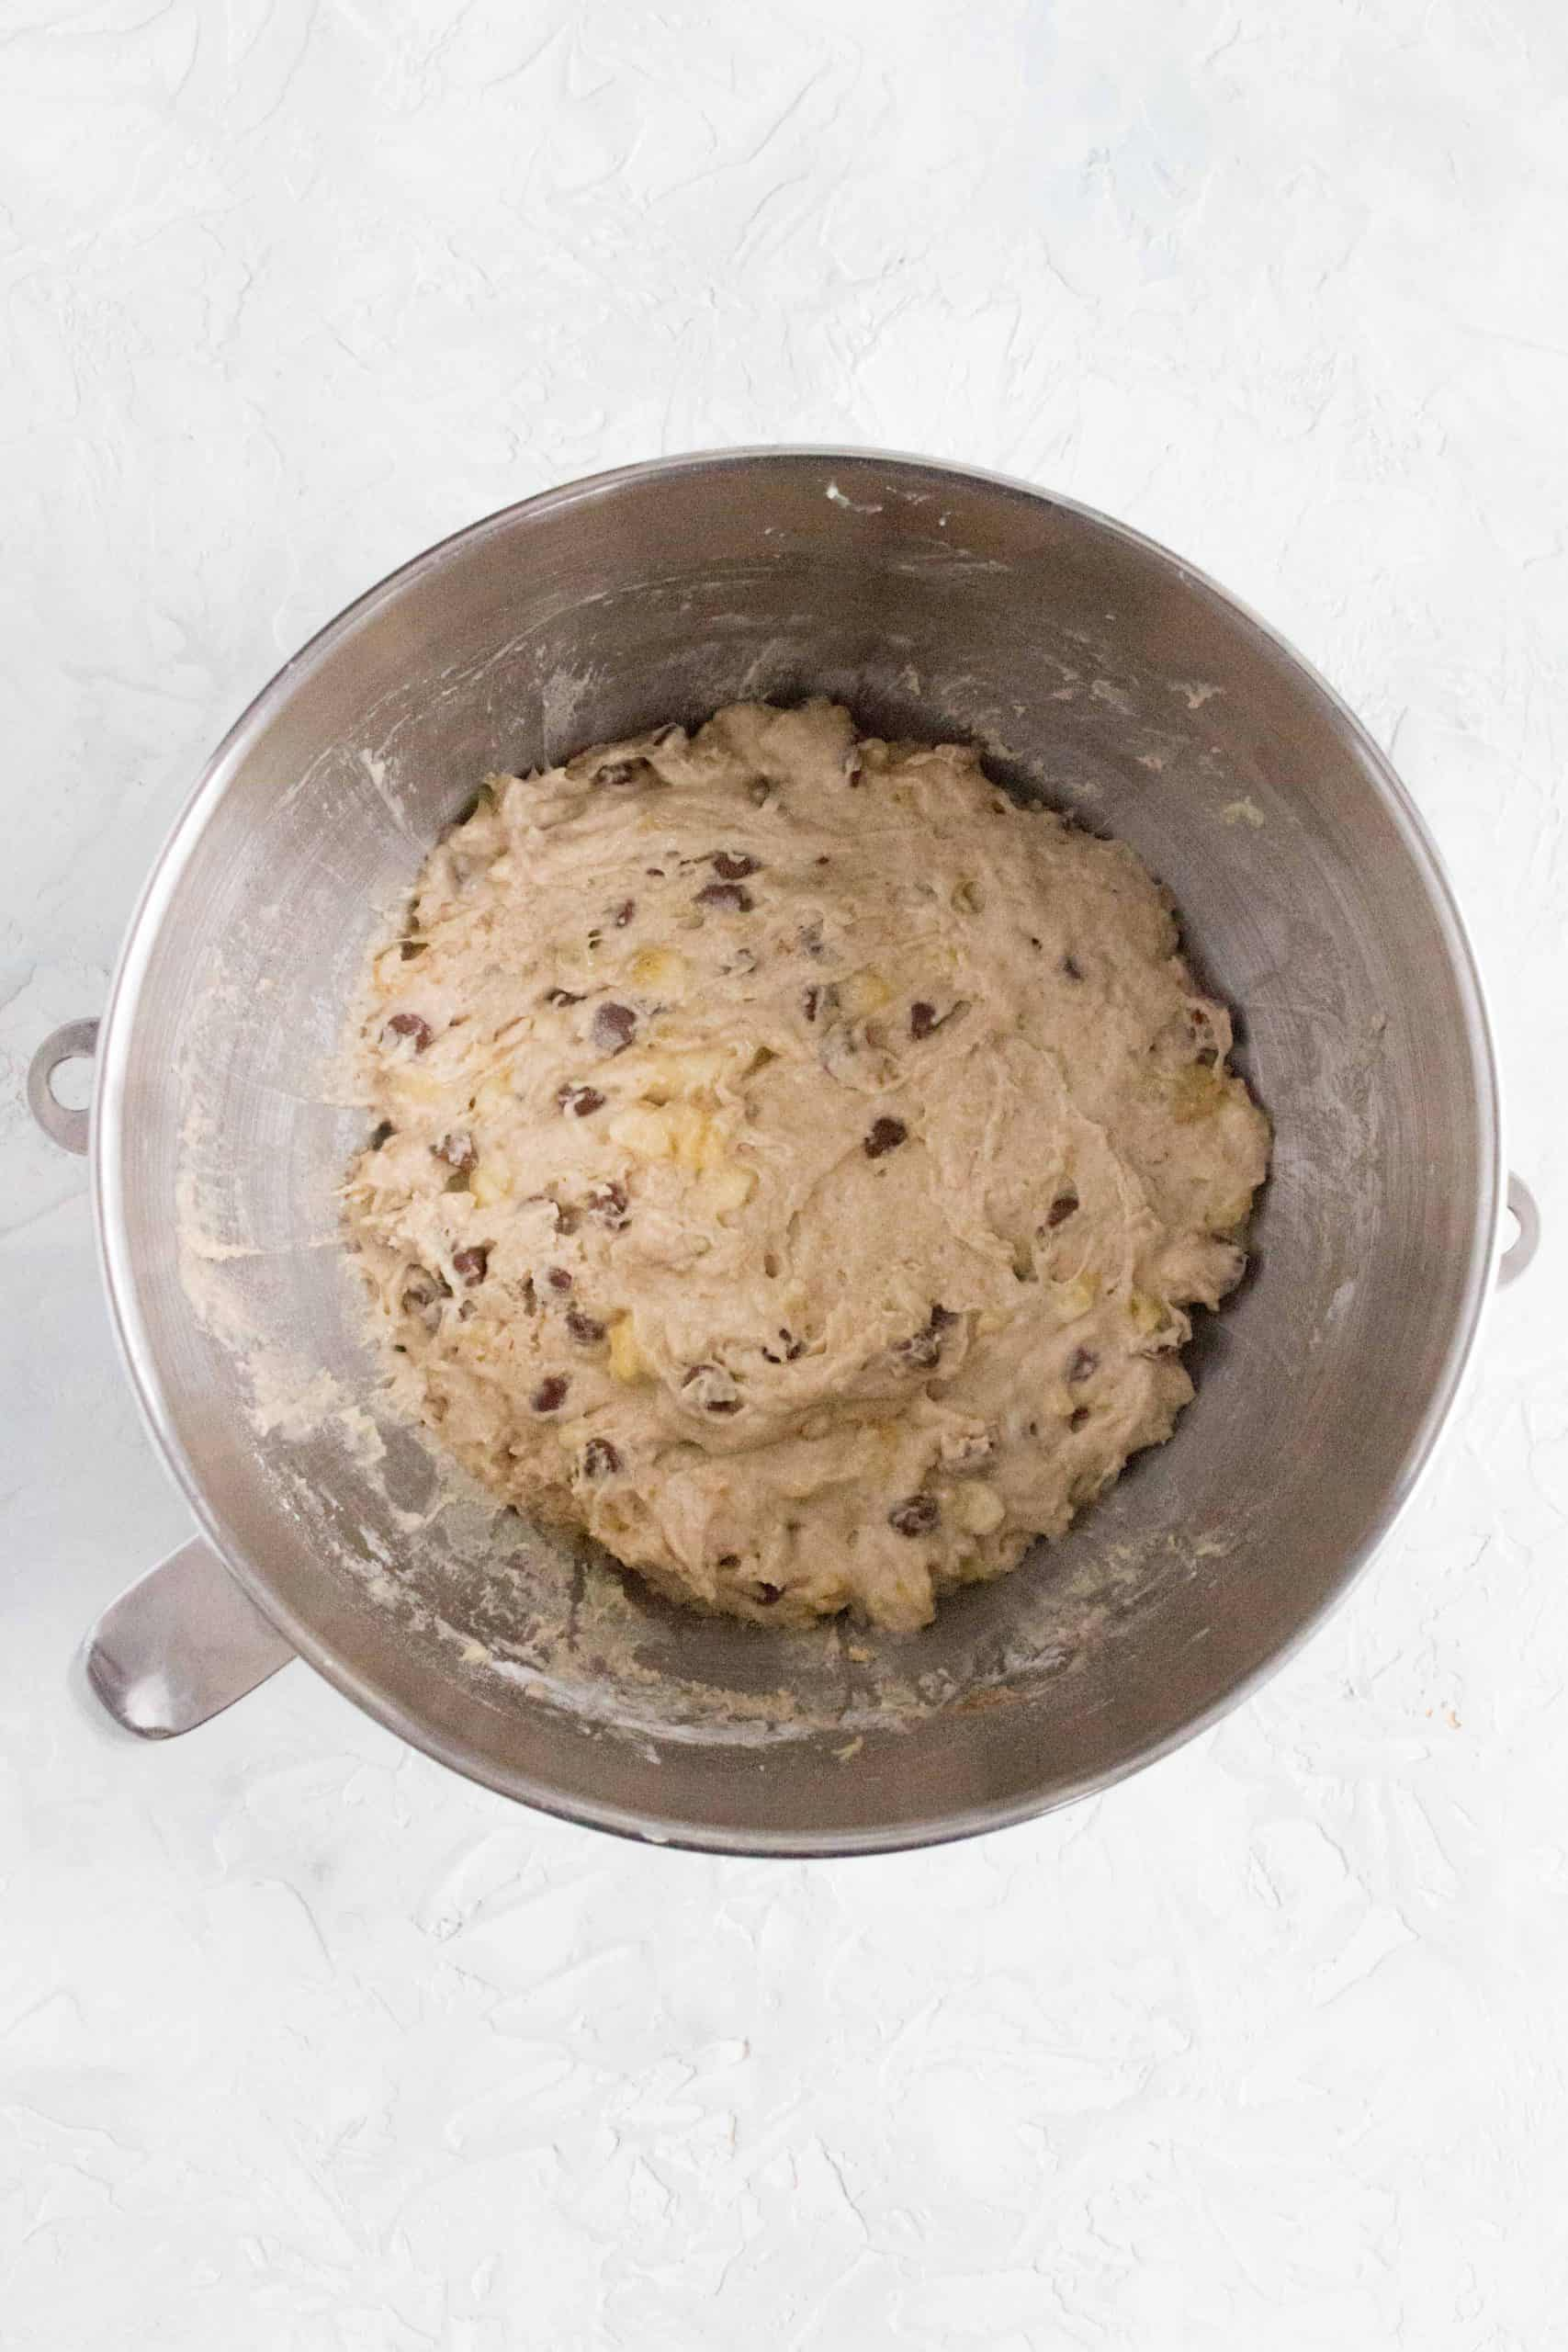 banana chocolate chip muffin mix